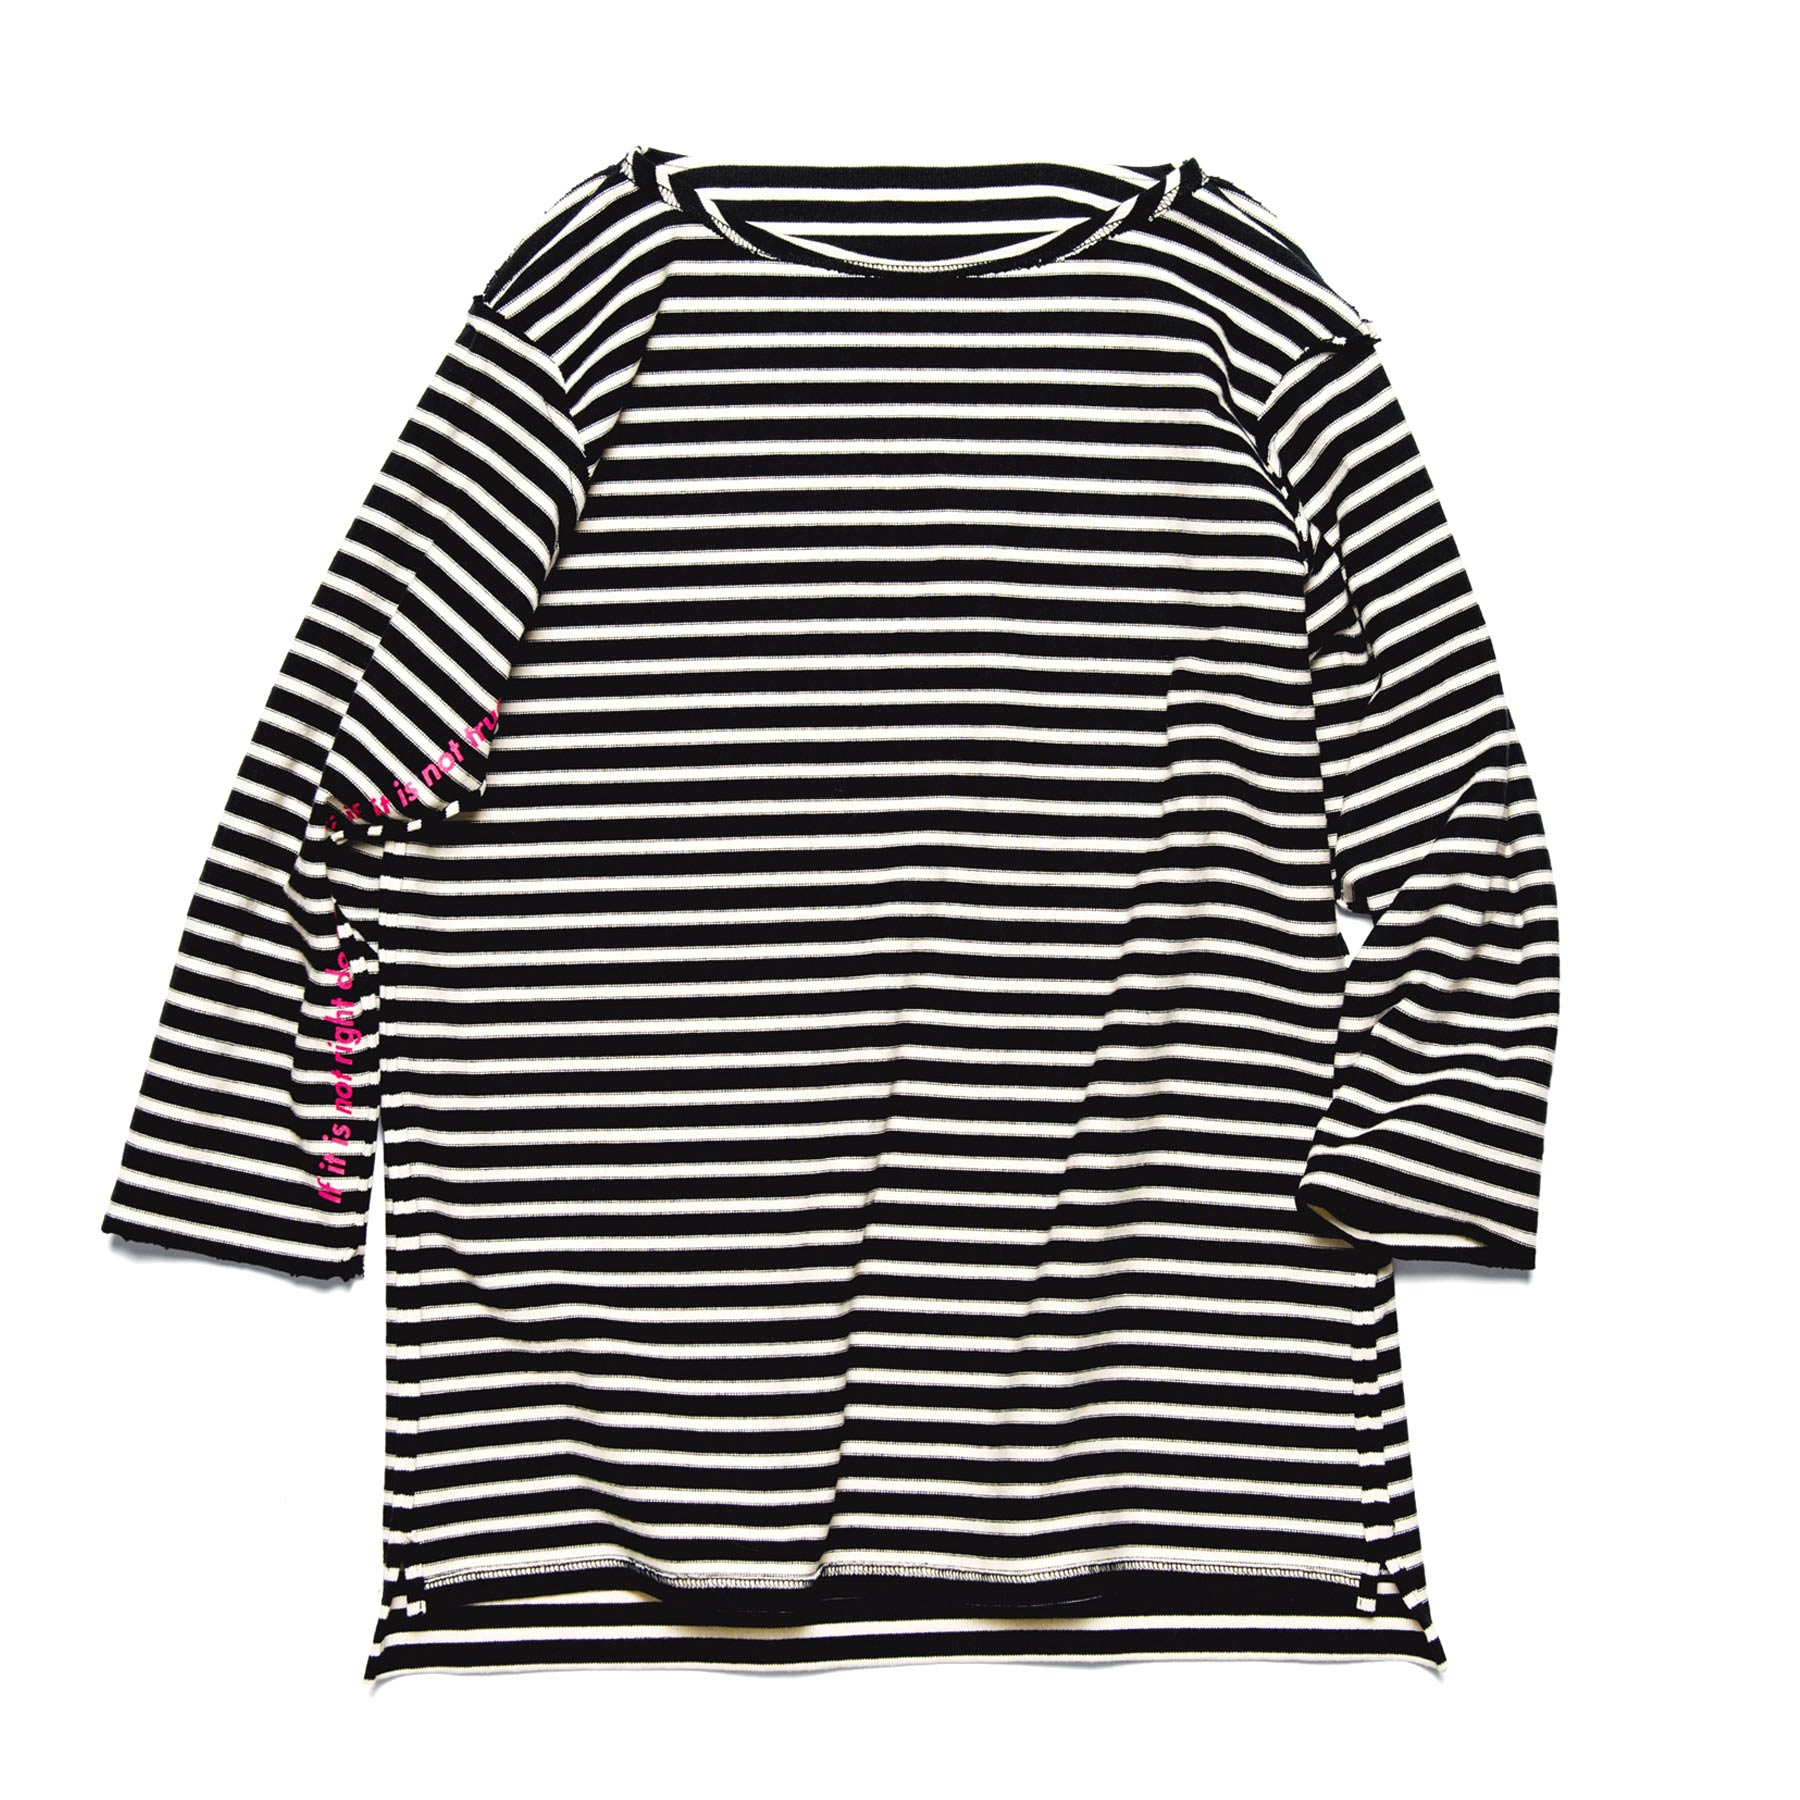 uniform experiment / CUT OFF 3/4 SLEEVE BORDER BOAT NECK TEE -narrow border